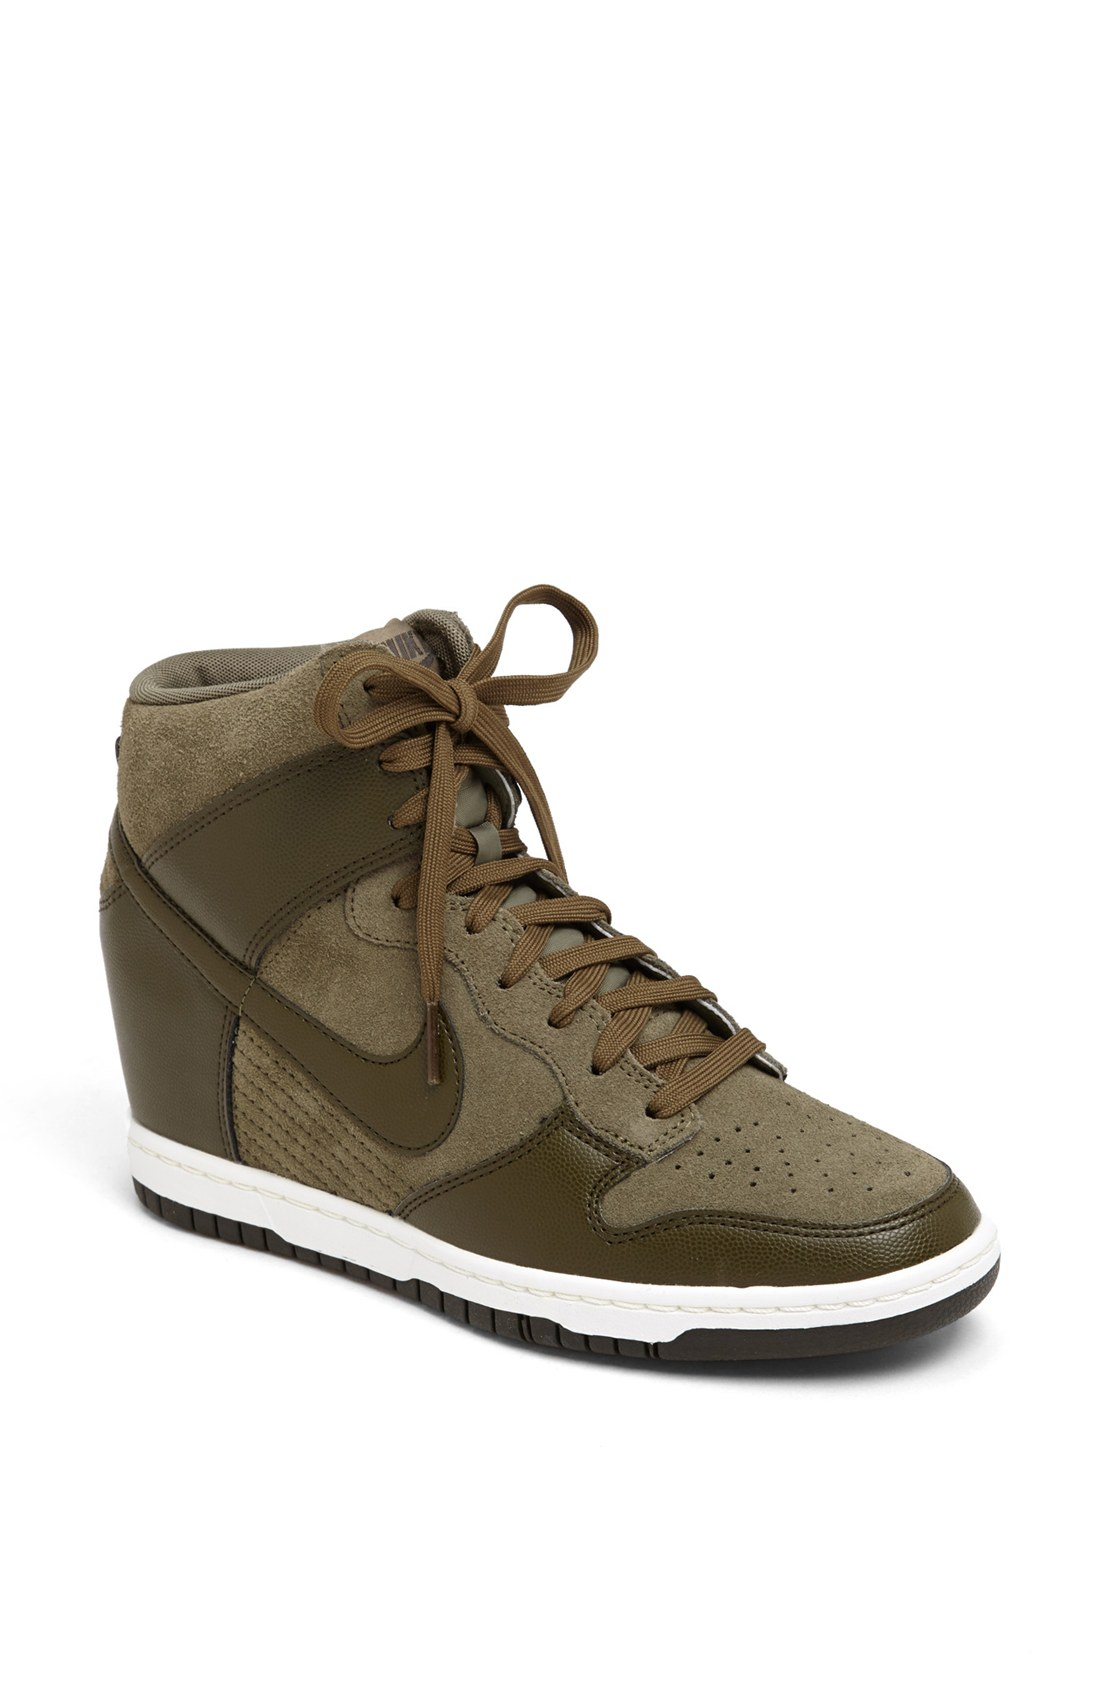 nike wedge sneakers for women bing images